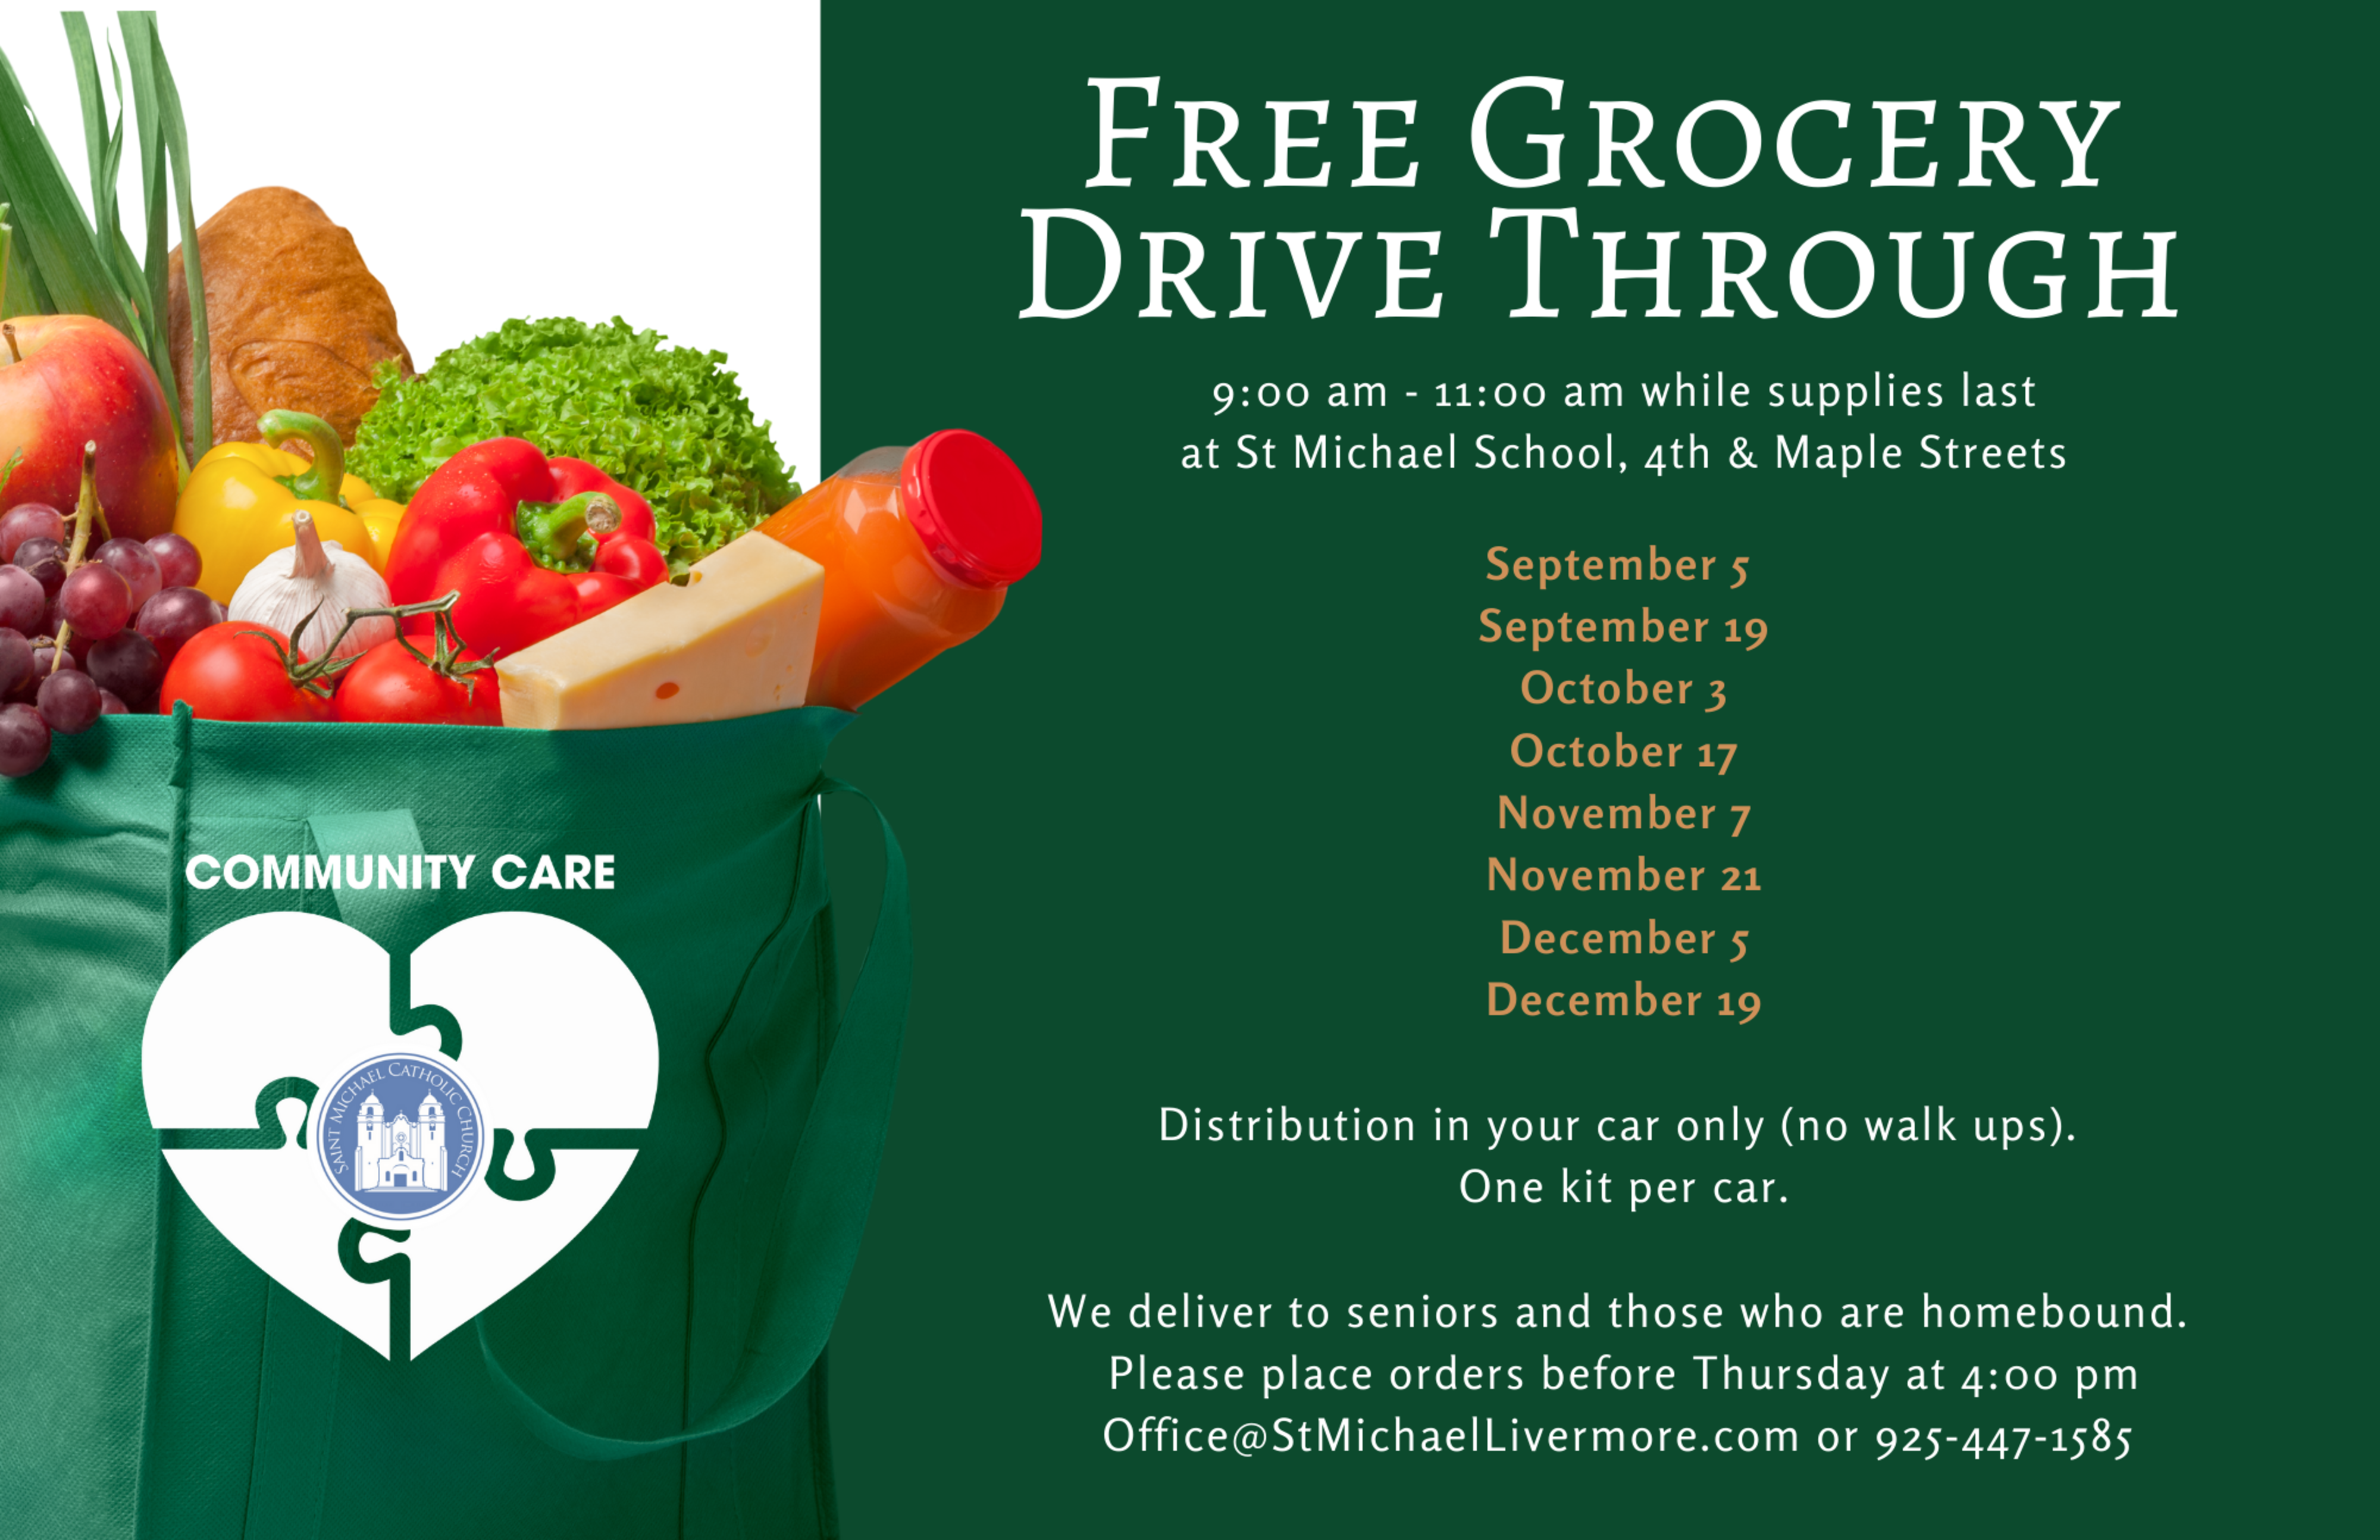 Free Grocery Drive Through Flier Final